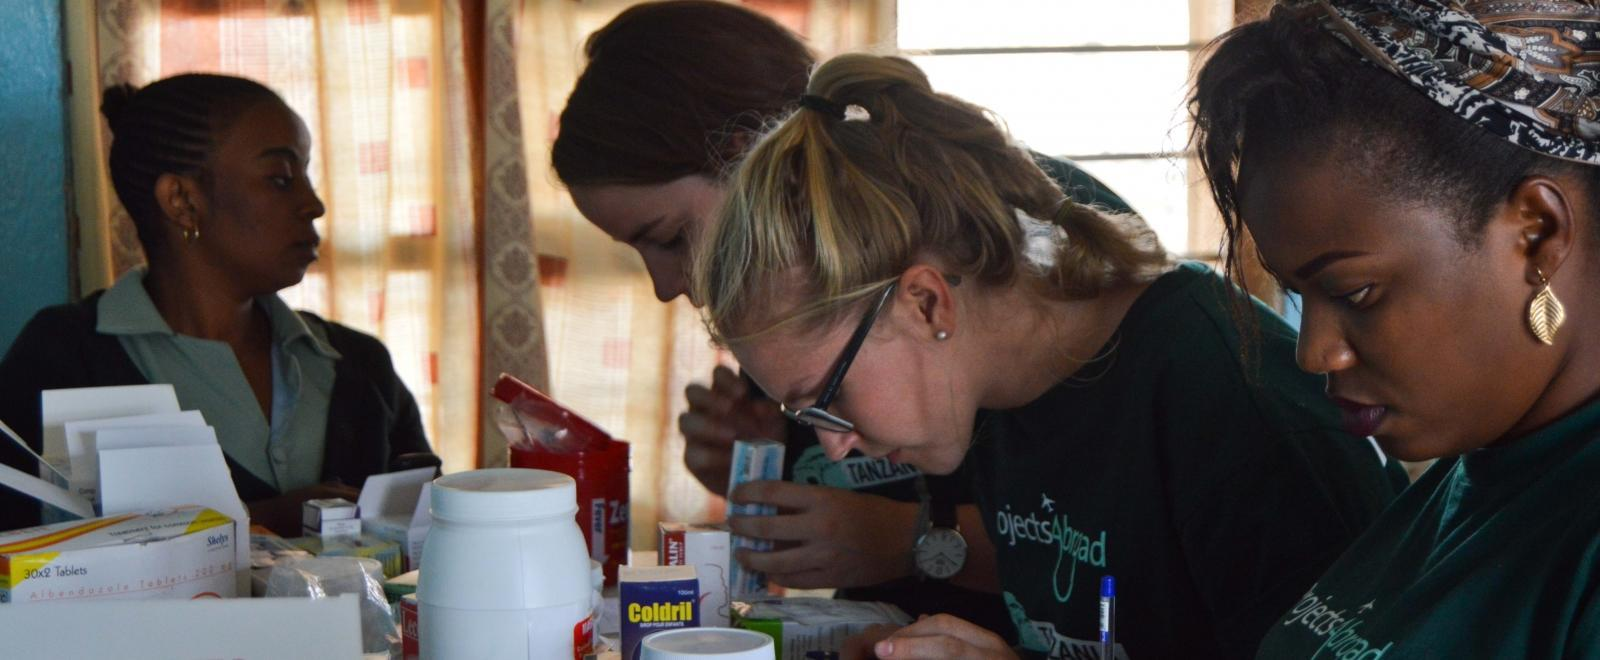 Pharmacy interns in Tanzania sort and label medication needed for a medical outreach.